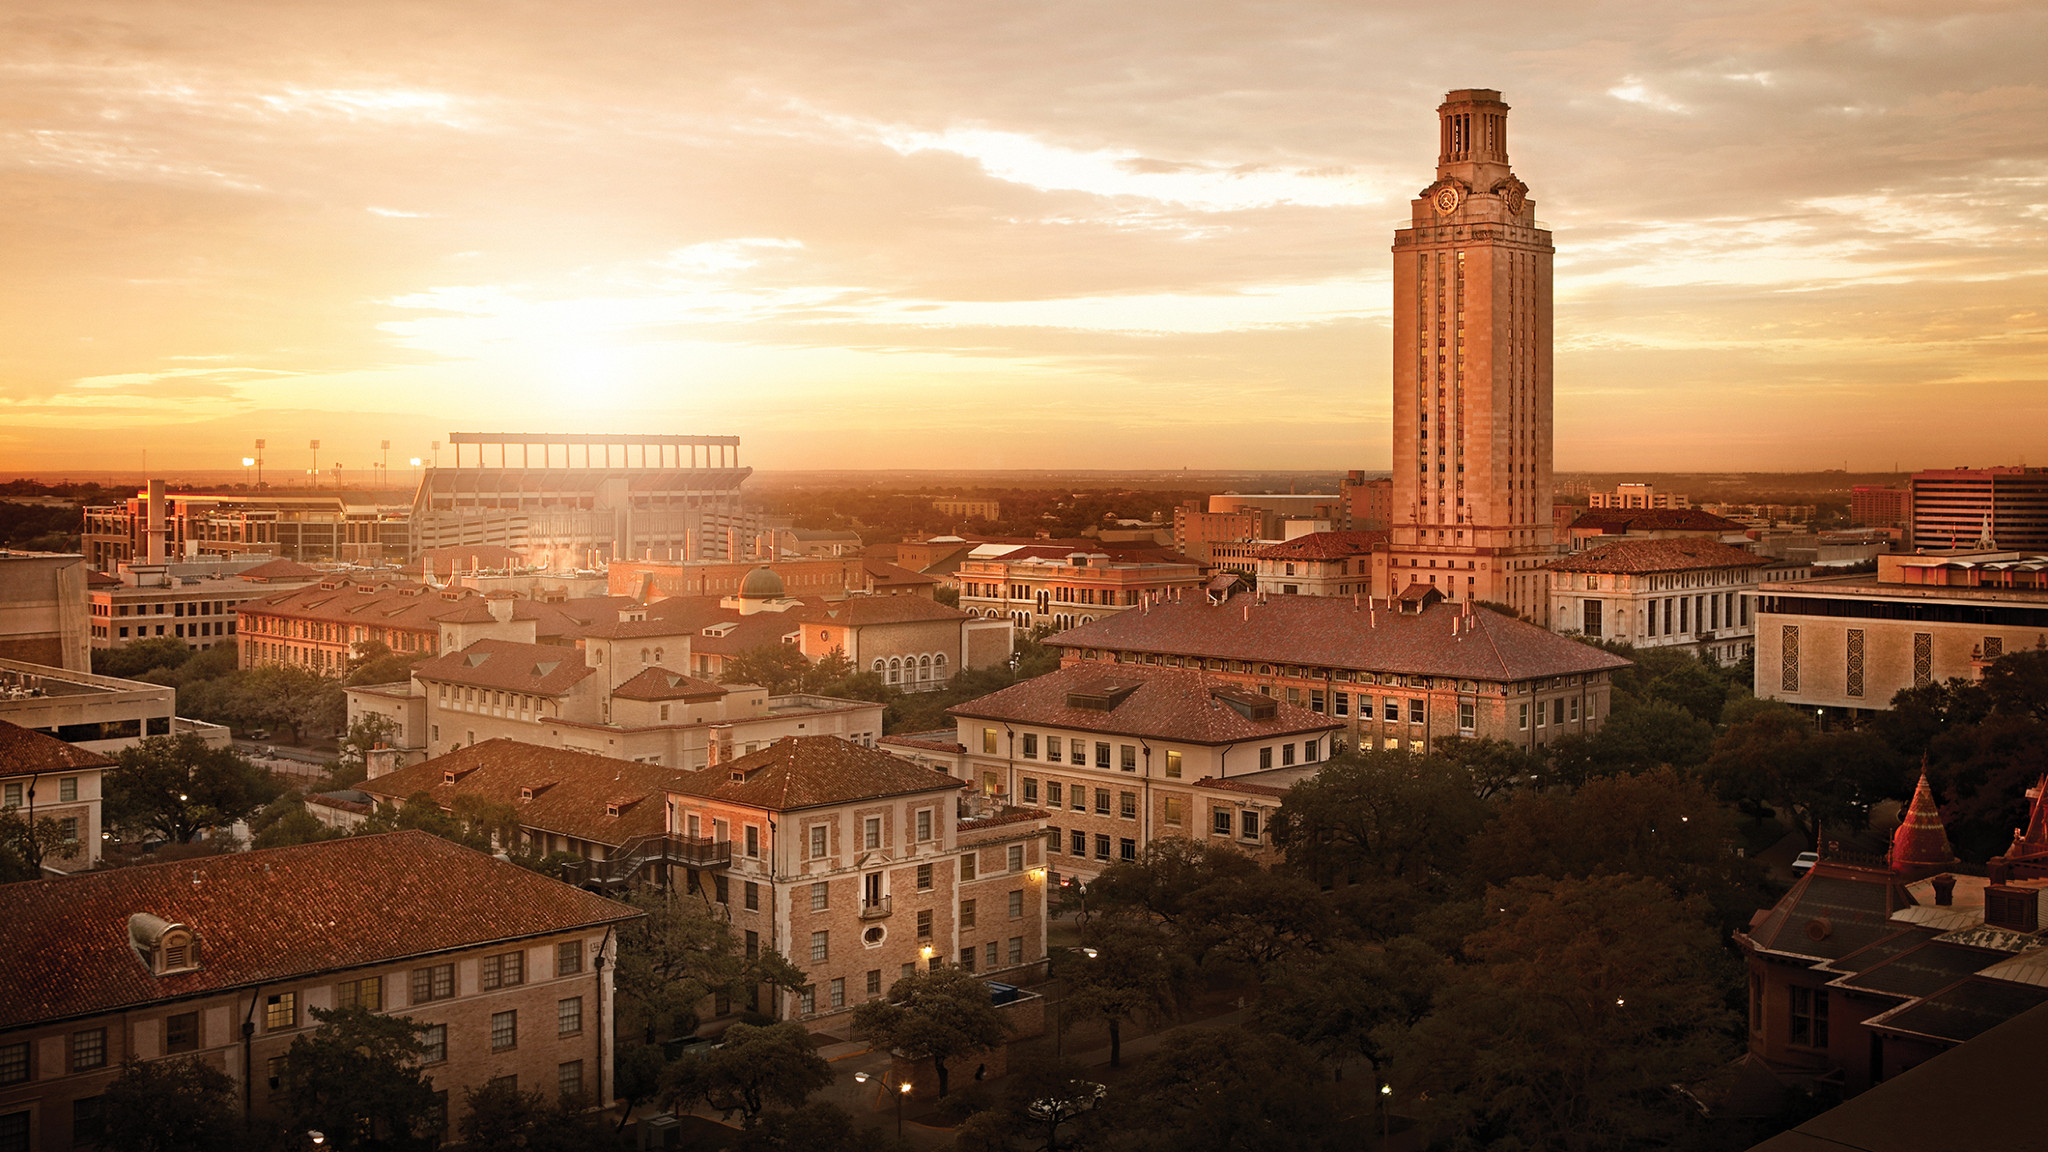 University Of Texas Wallpaper